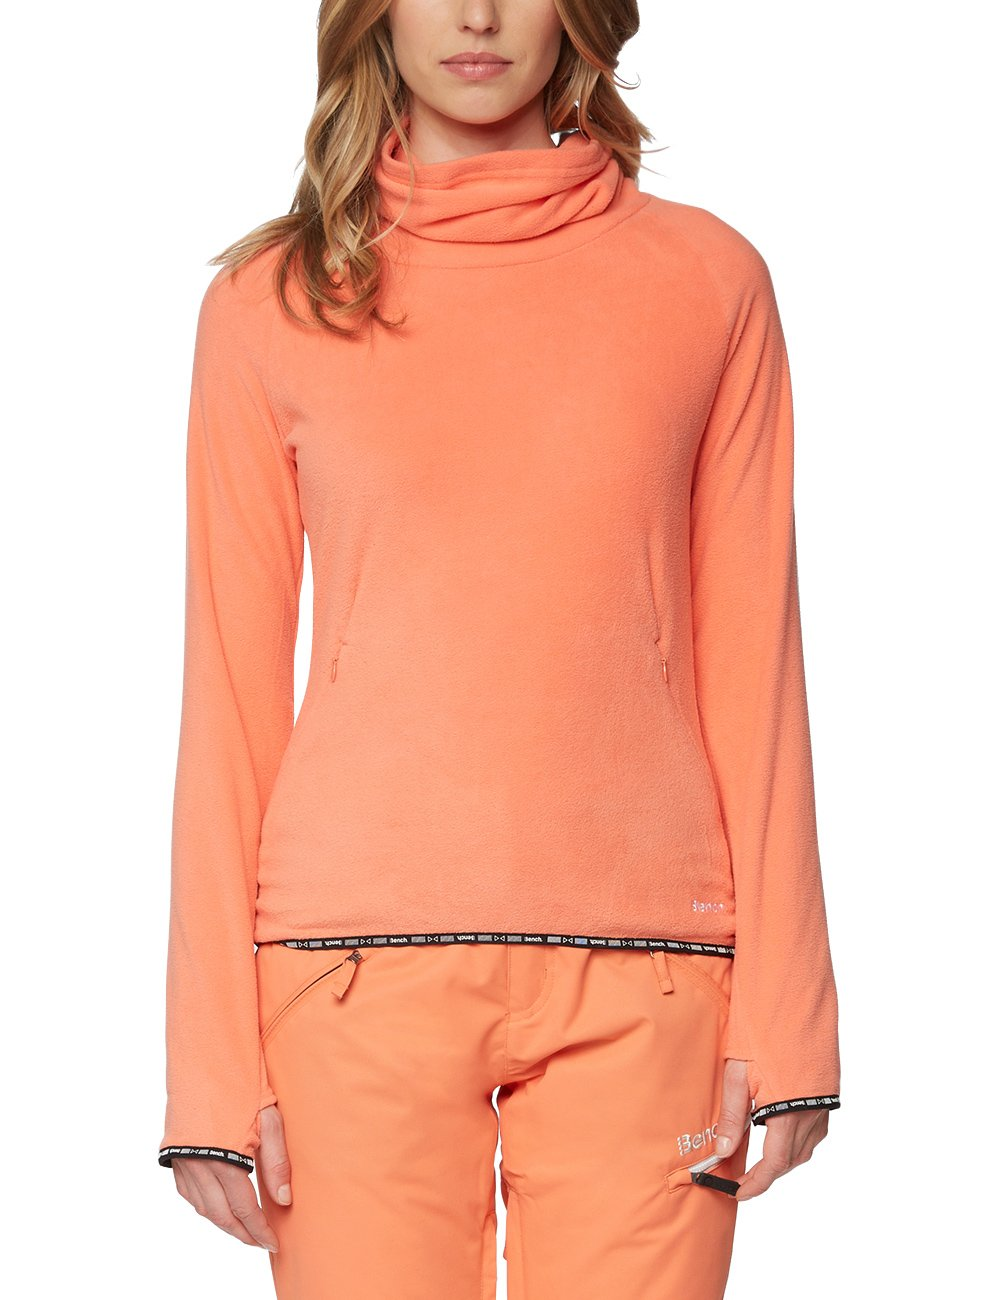 Bench Damen Bpwe001813 Heavy Top